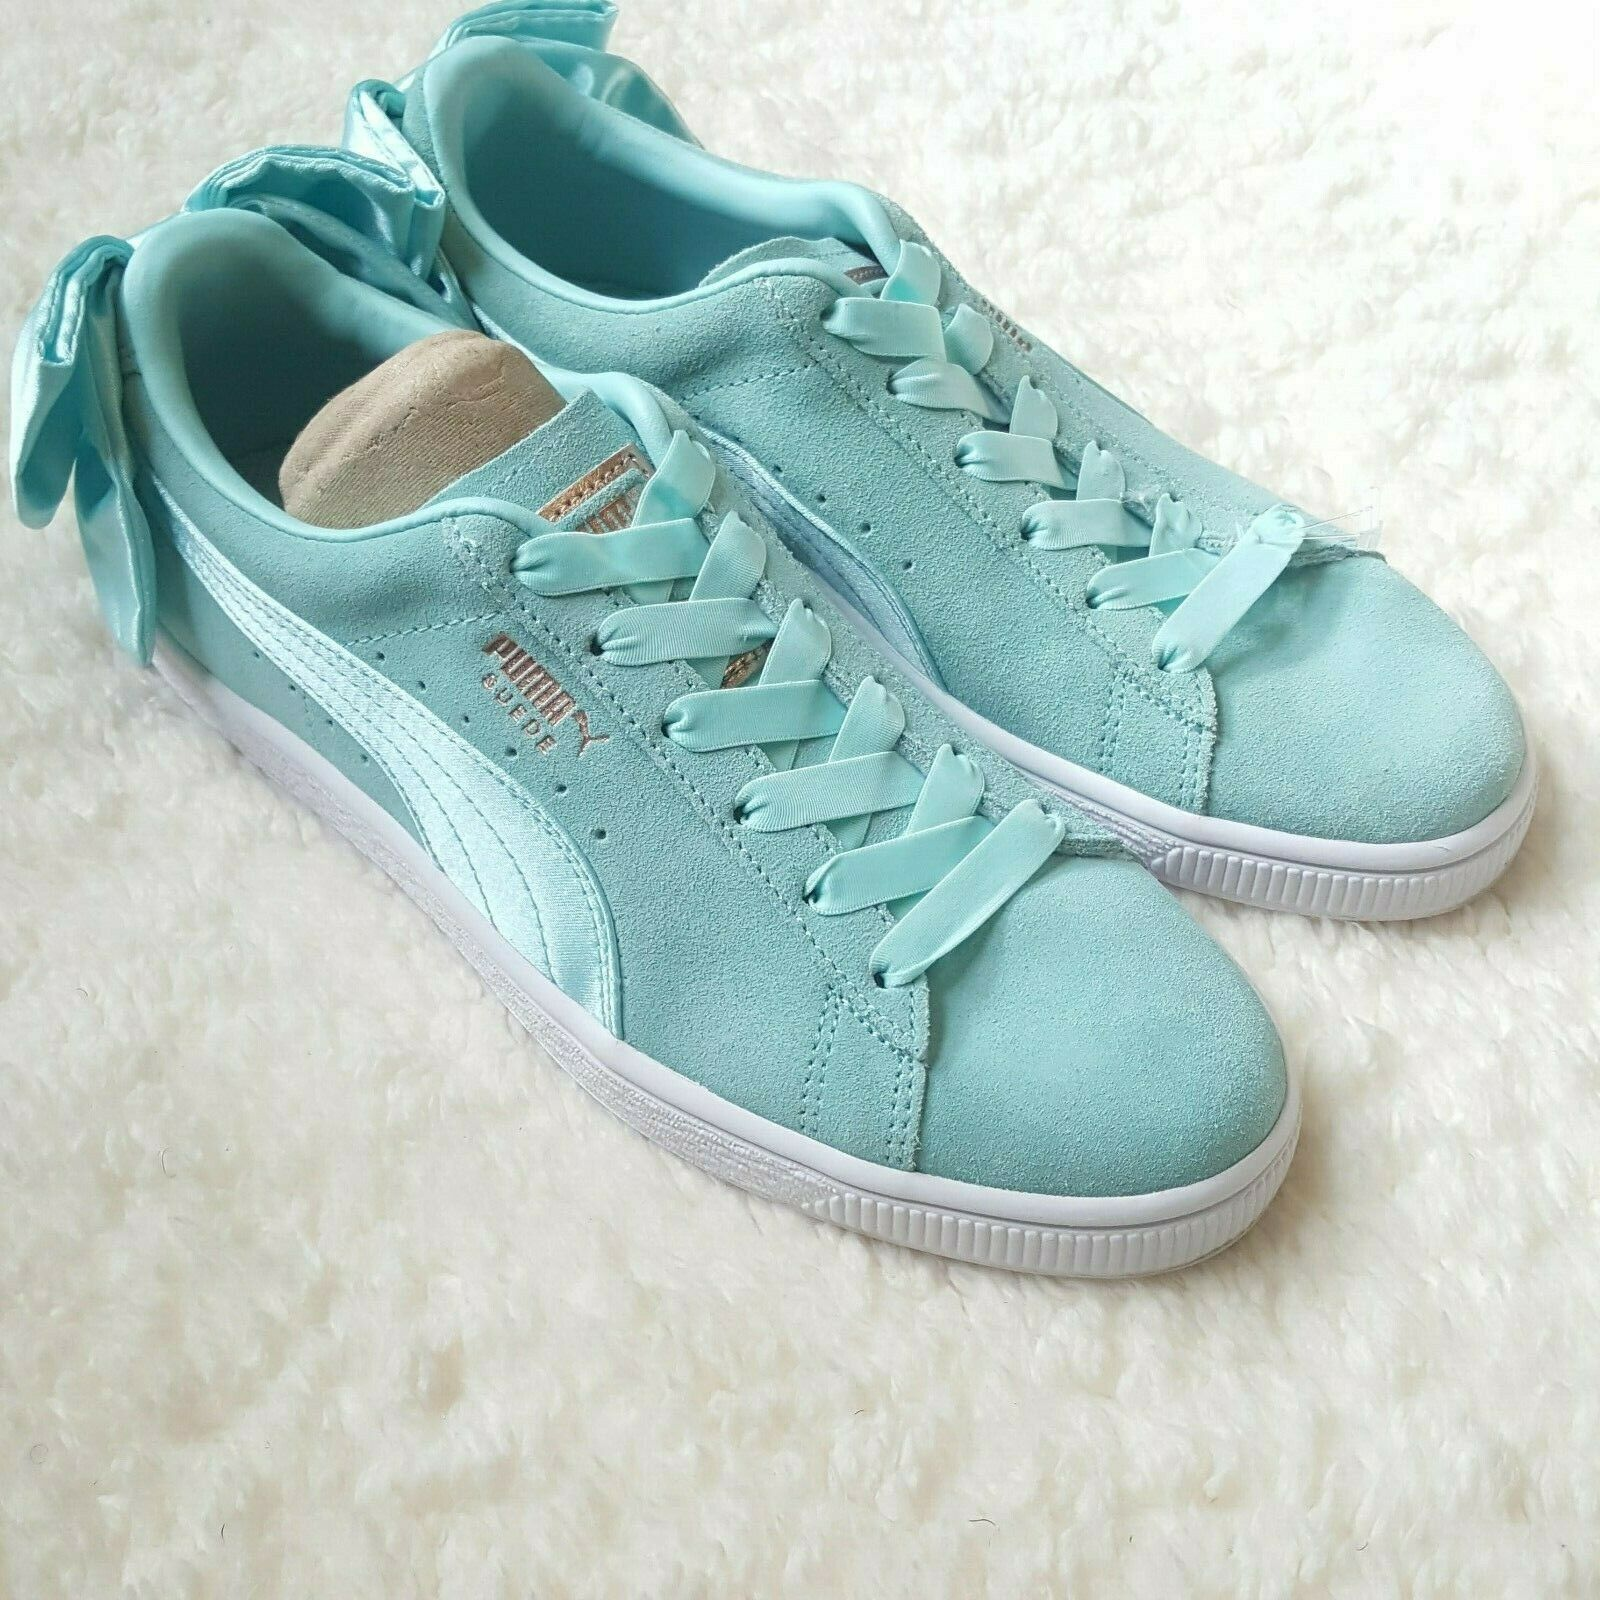 PUMA Suede Bow Women's Sneakers Athletic Shoes Size 7.5 Island Paradise NWB